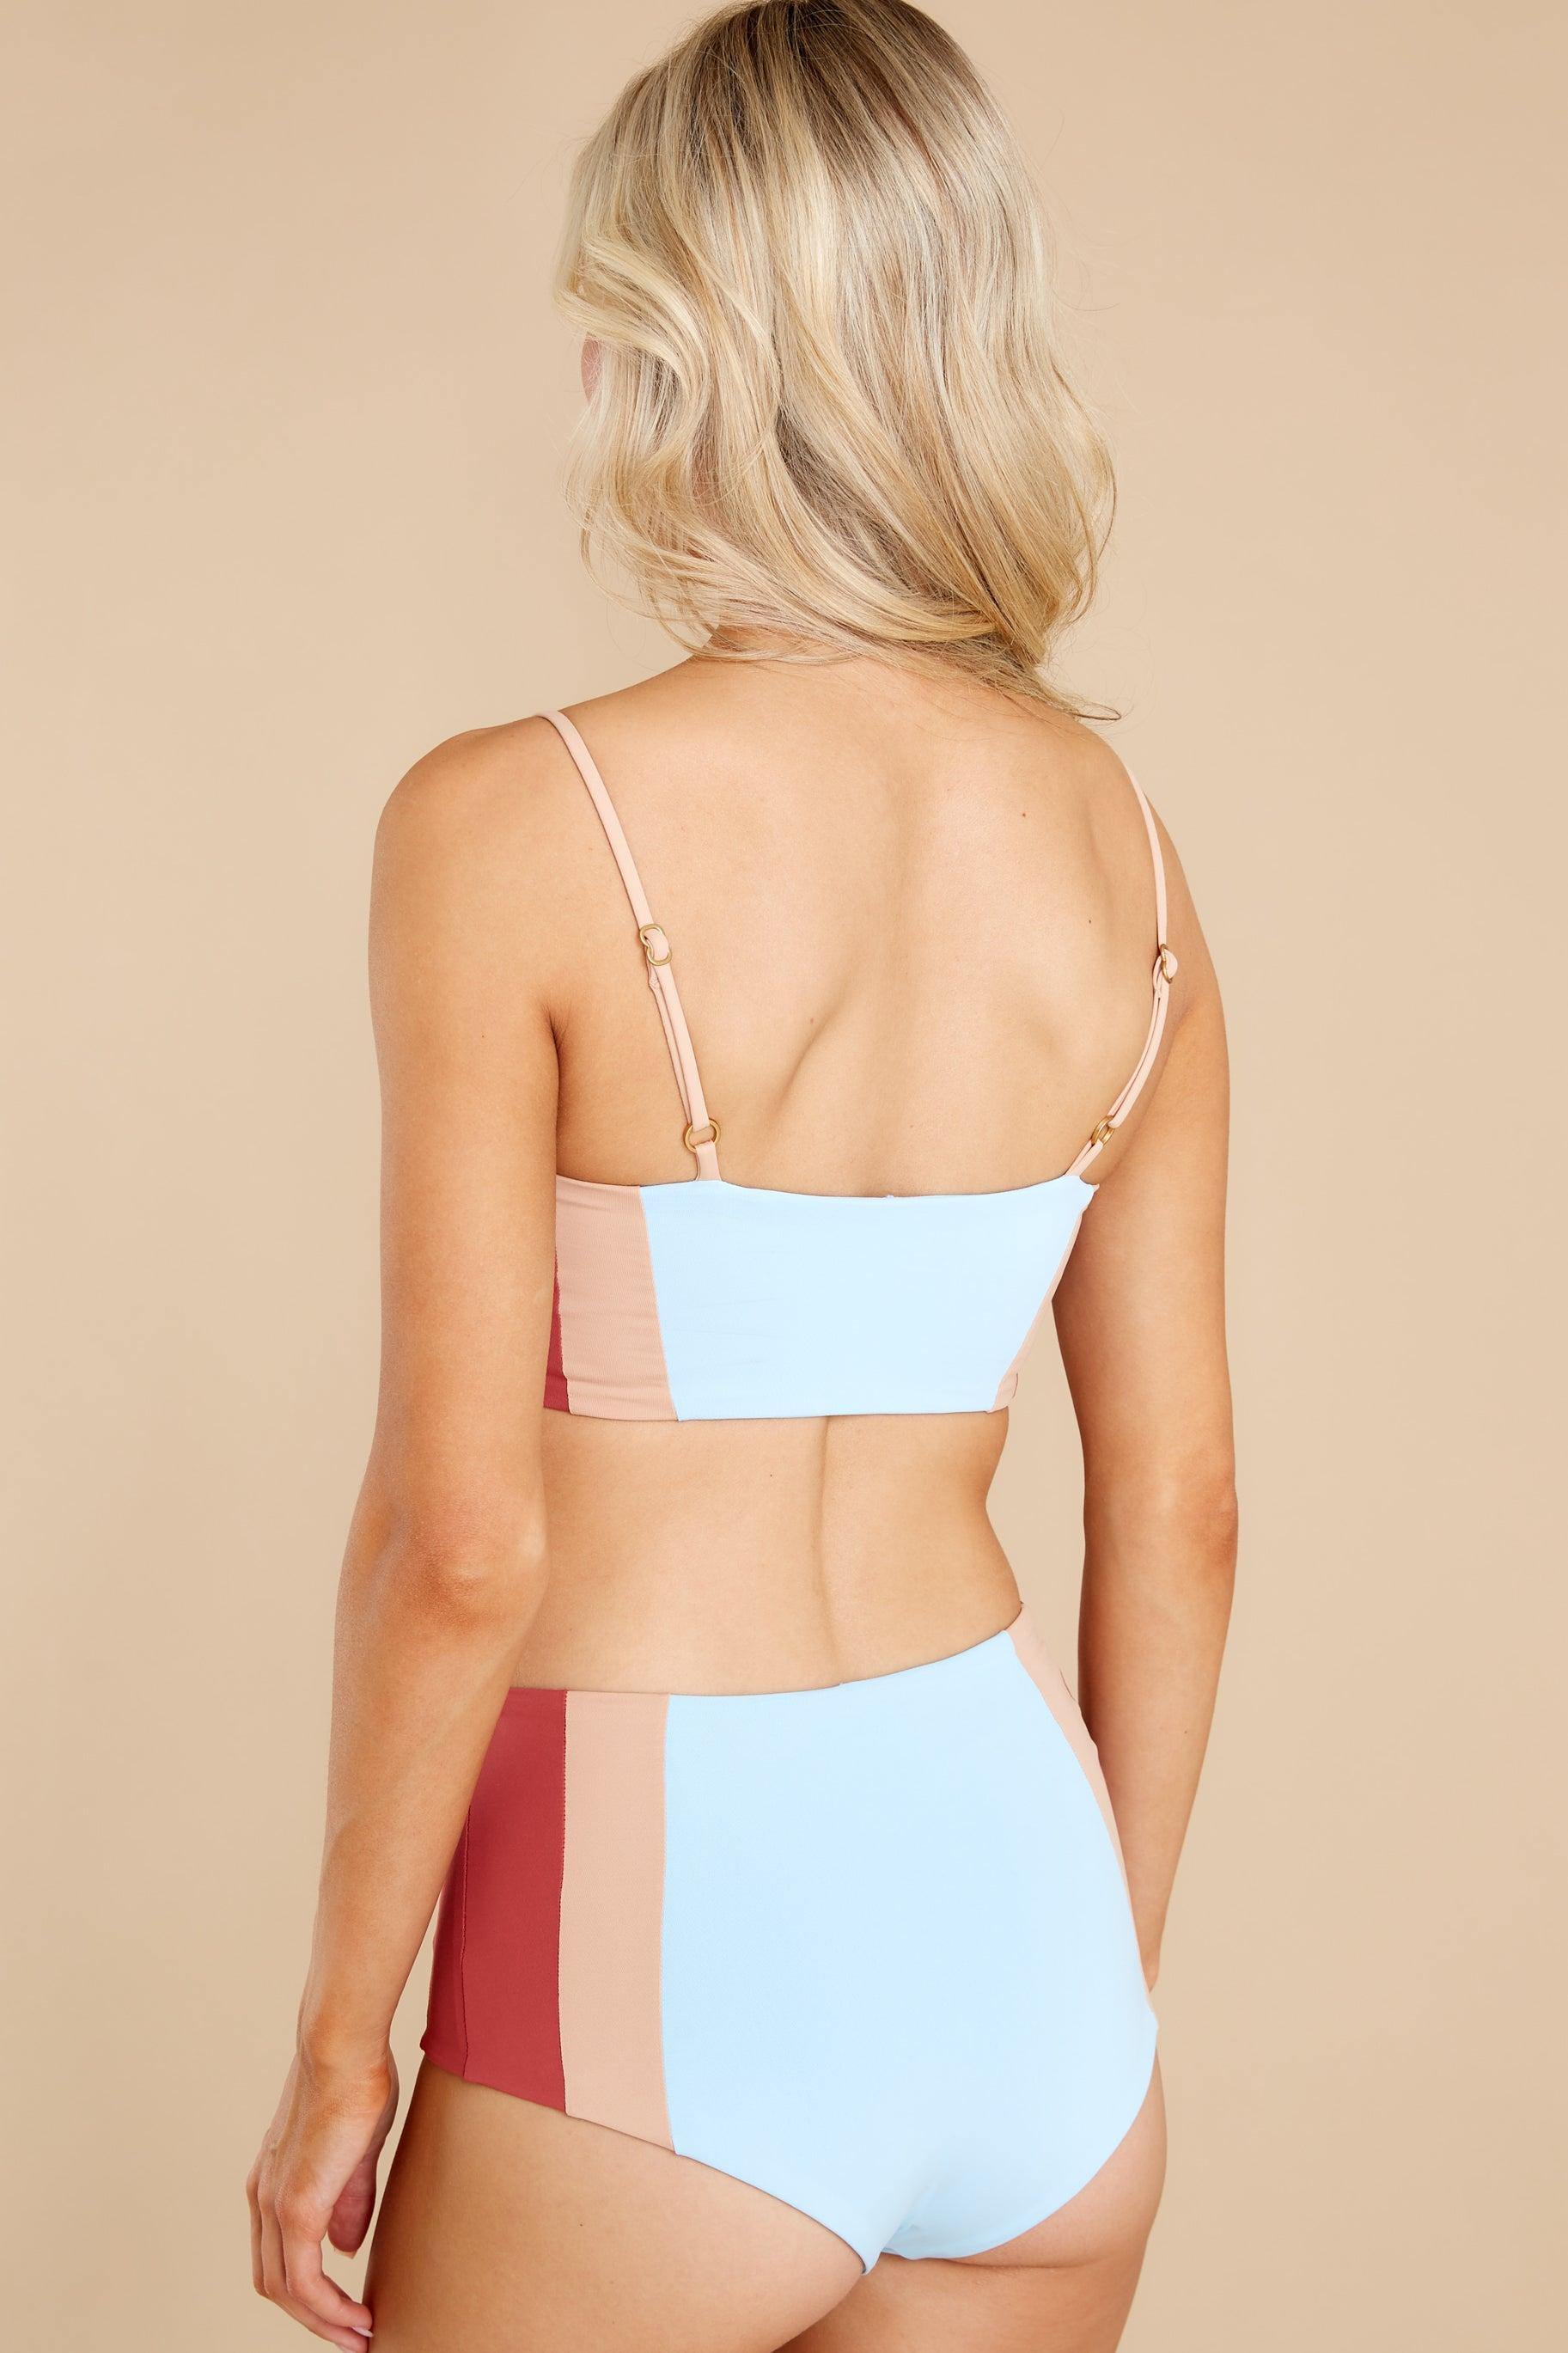 8 Rebel Heart Sky Blue And Brick Bikini Top at reddress.com